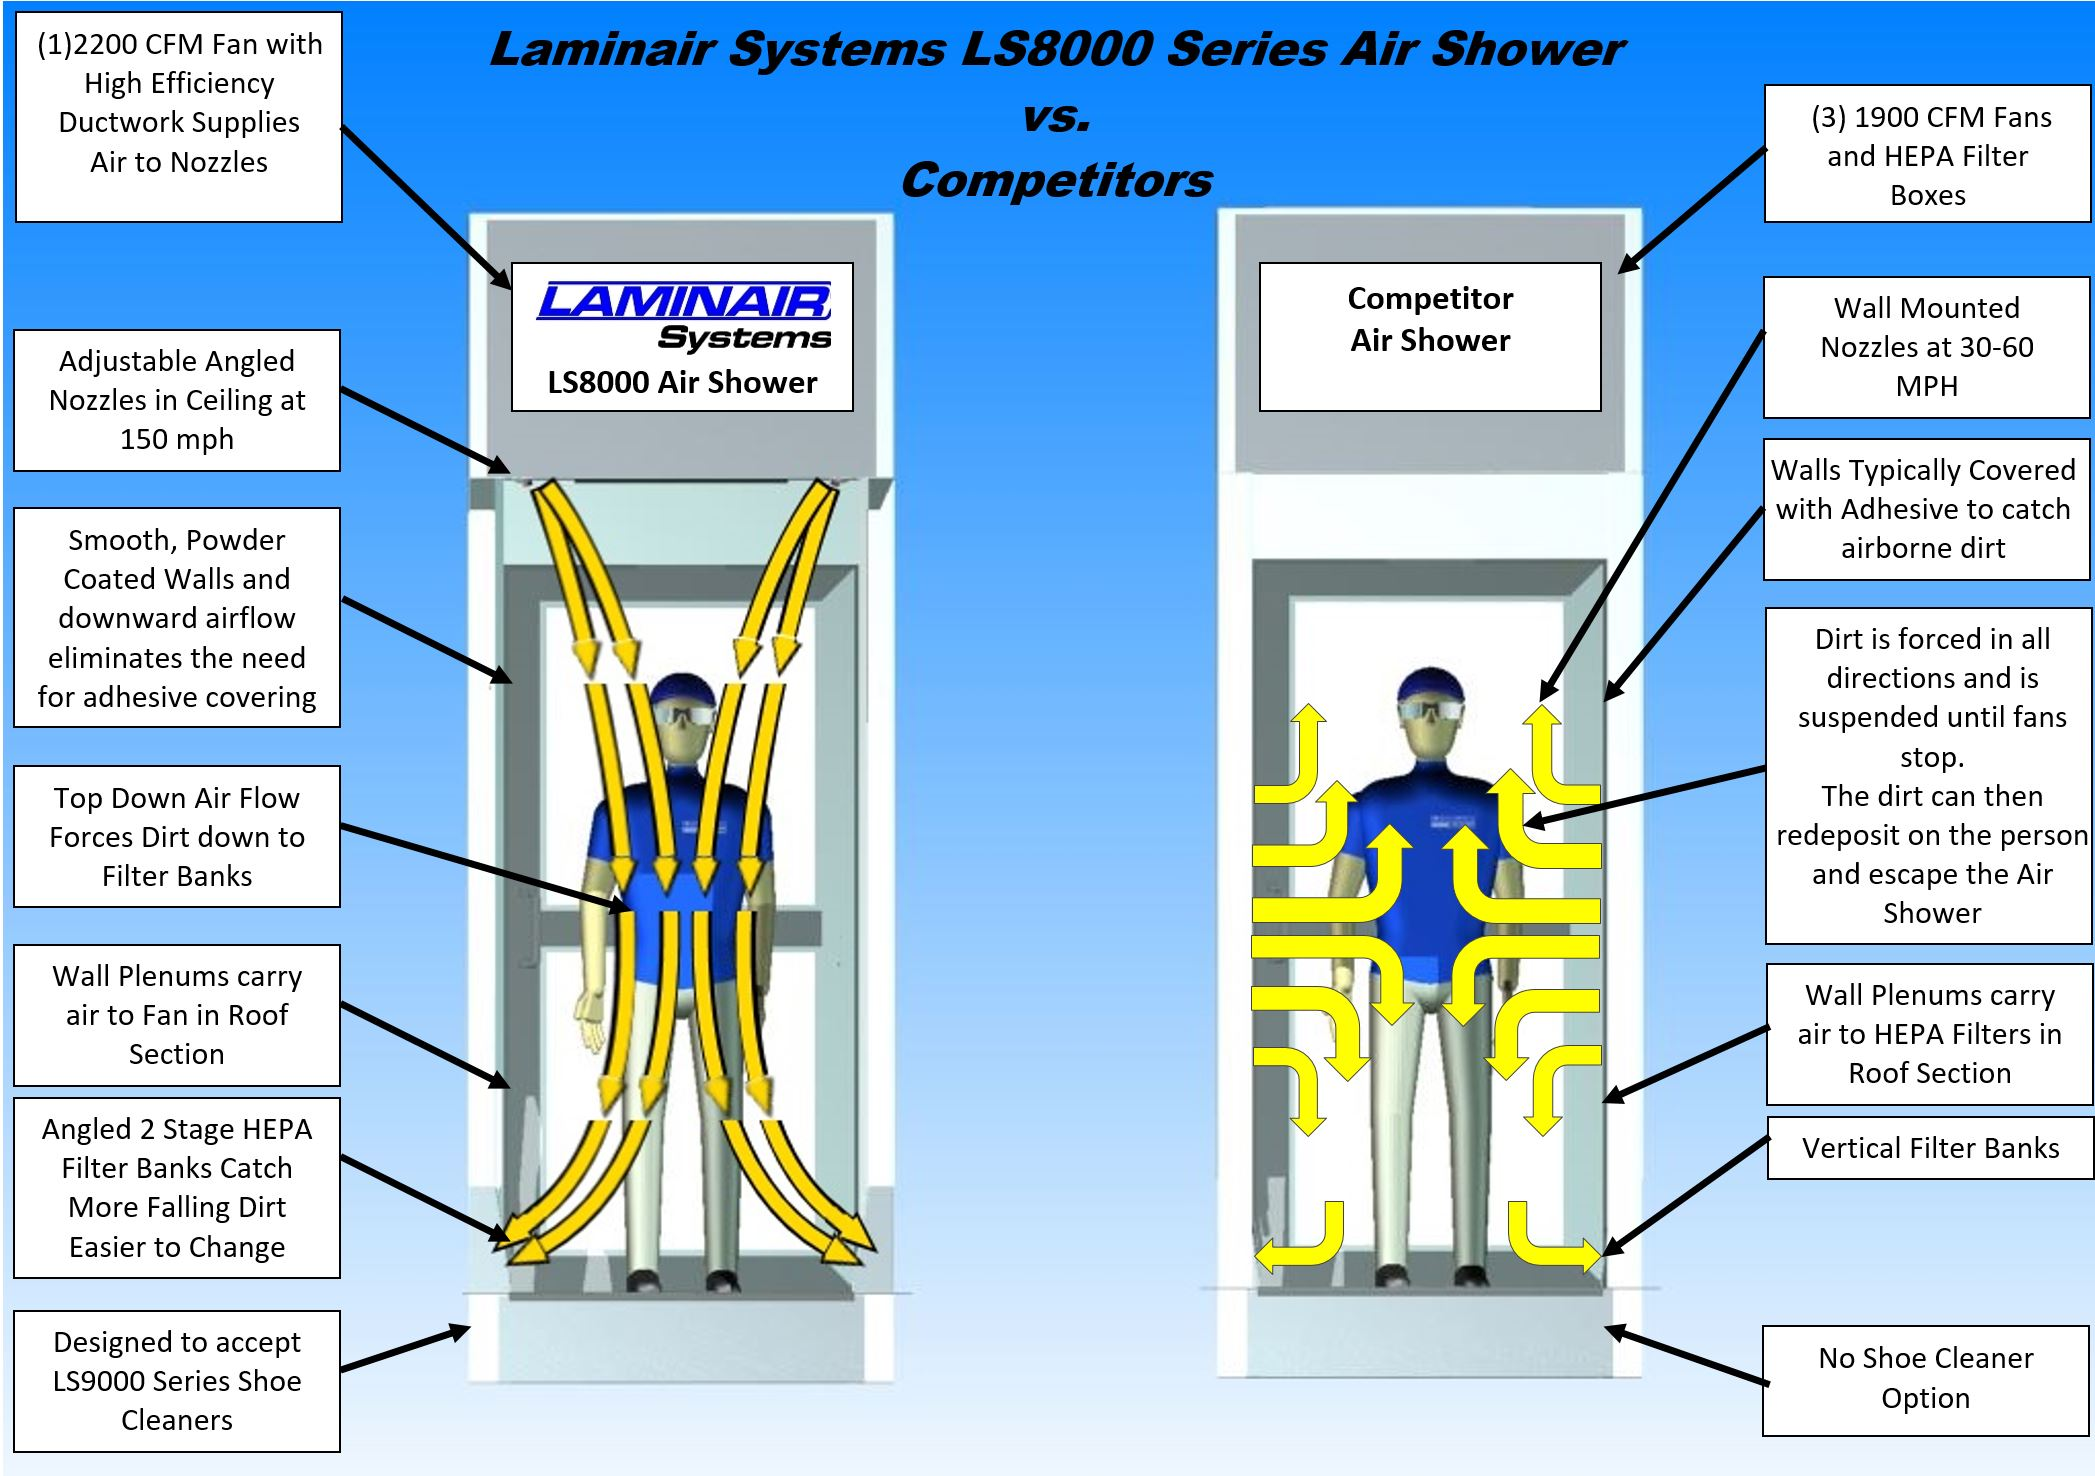 Laminair Air Shower Comparison.JPG